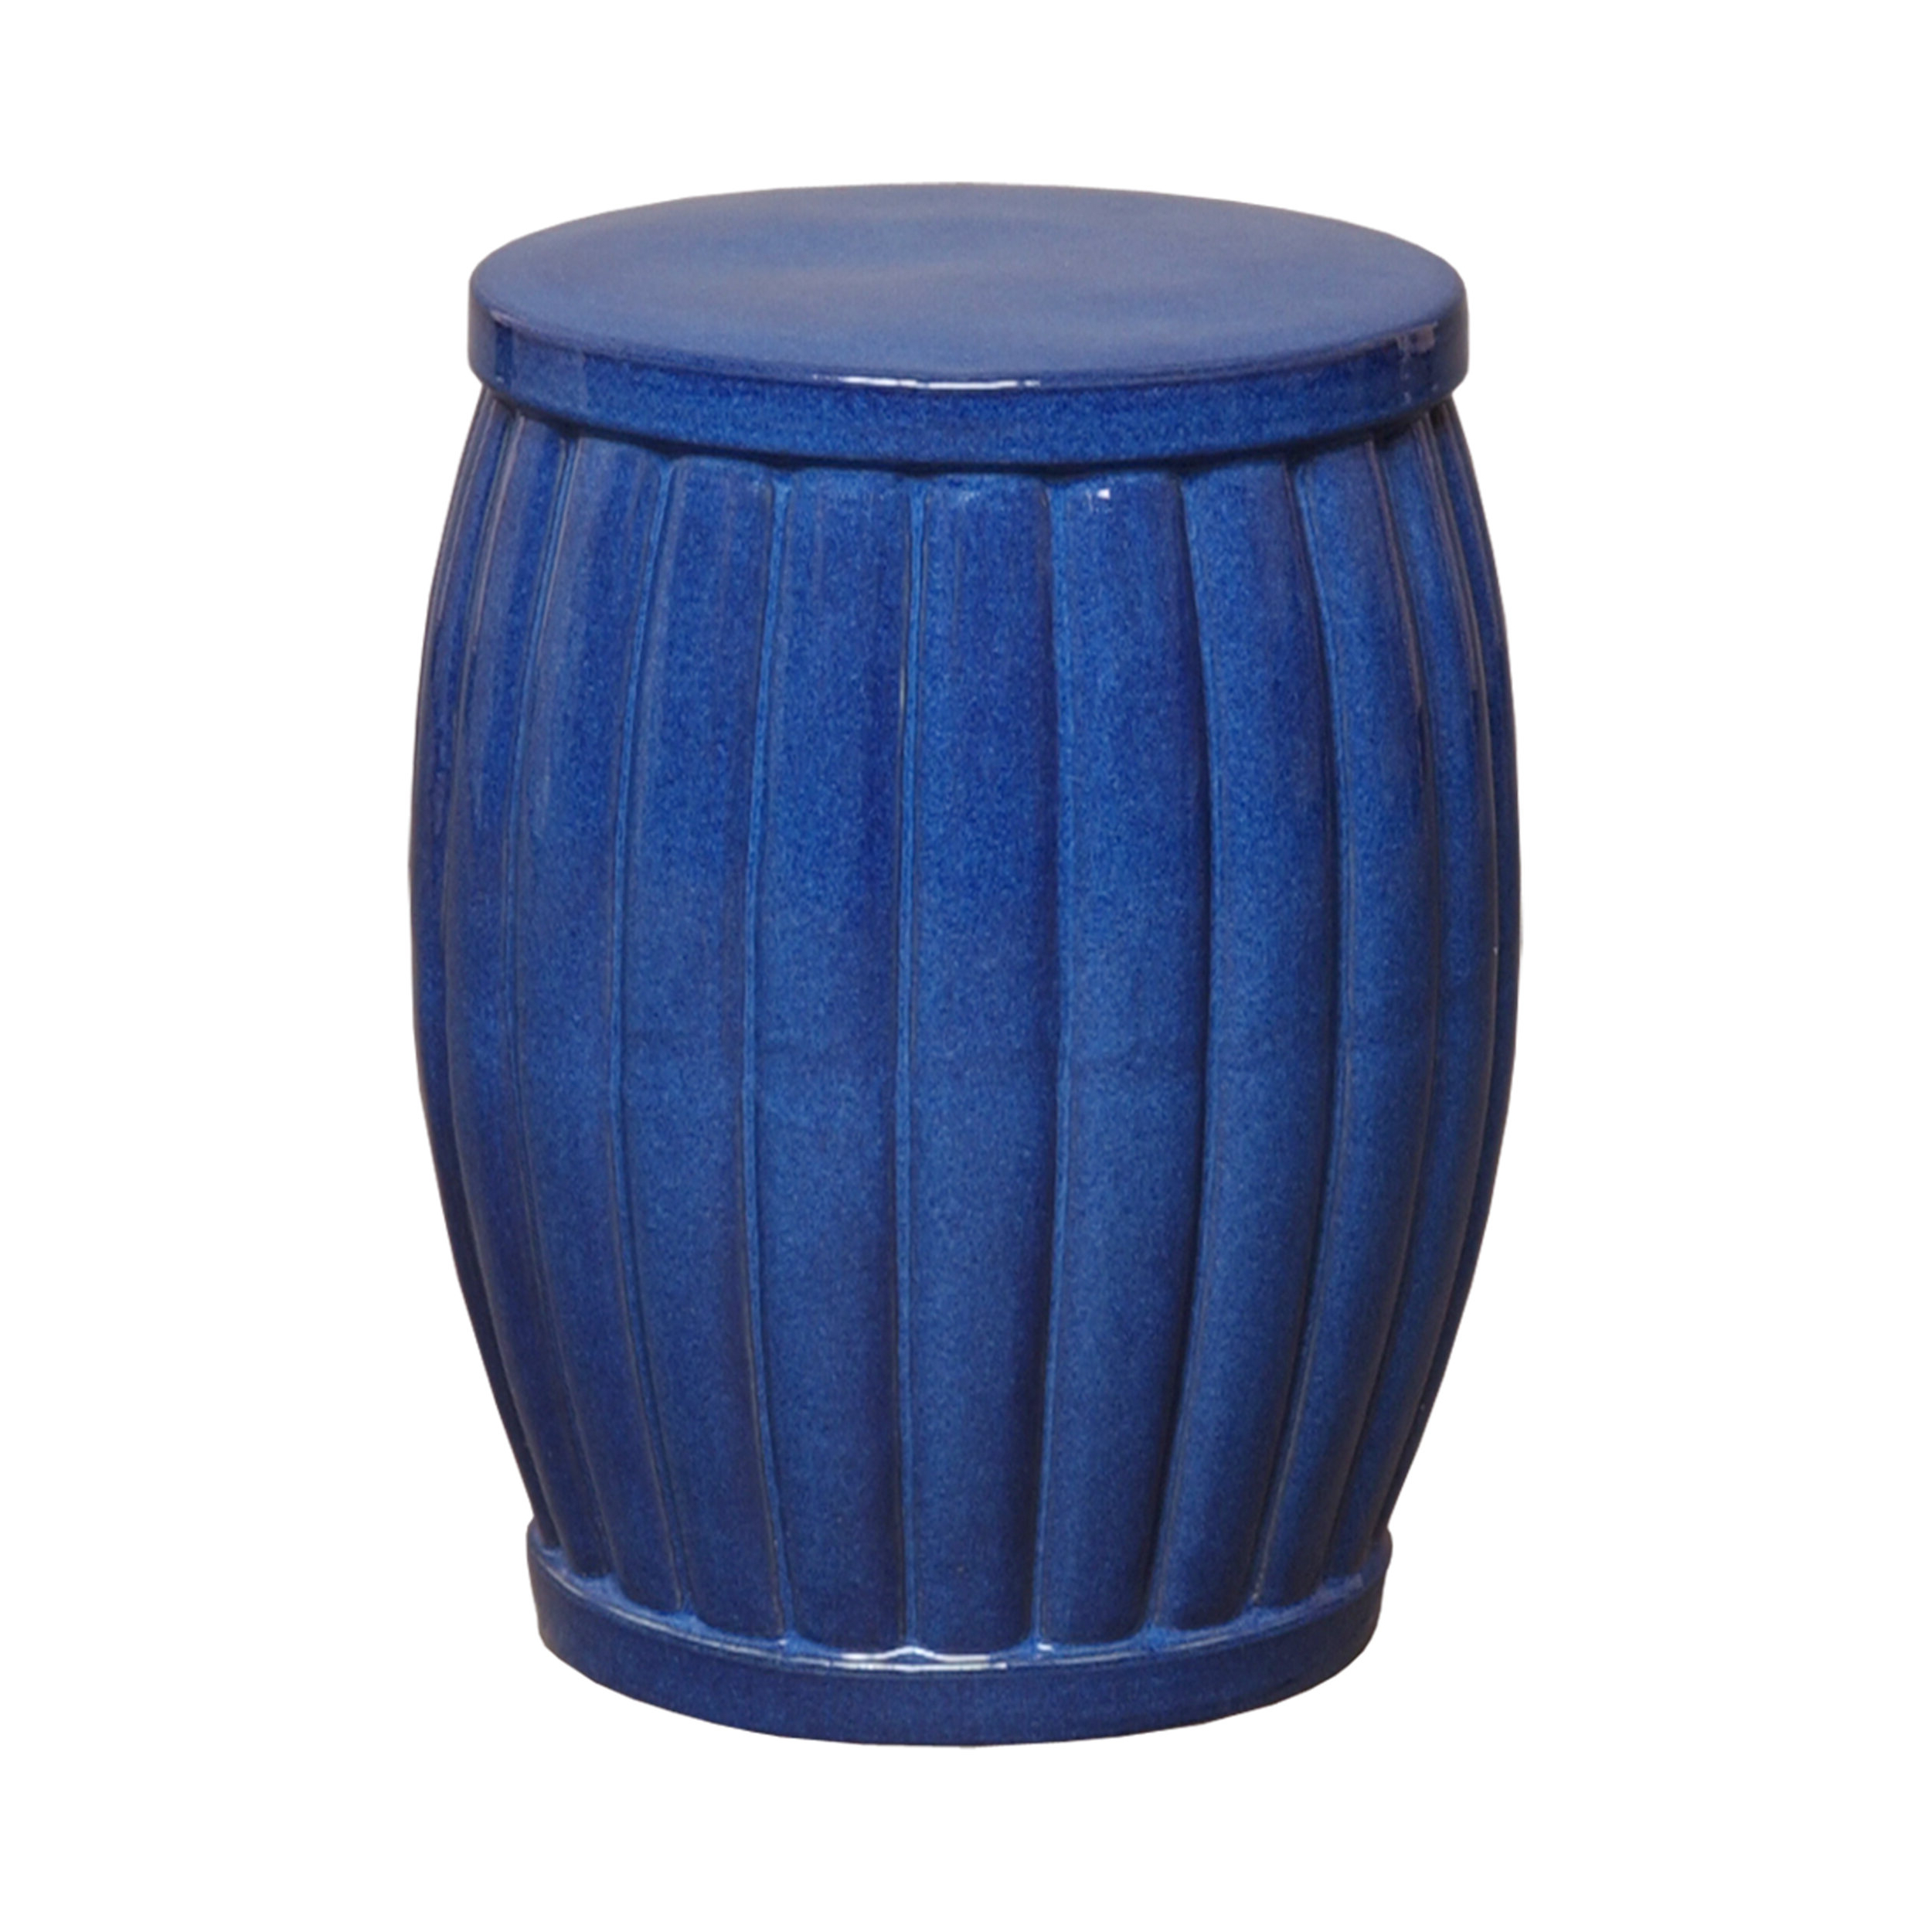 Jadiel Ceramic Garden Stools With Most Recent Wetherby Ceramic Garden Stool (View 11 of 30)